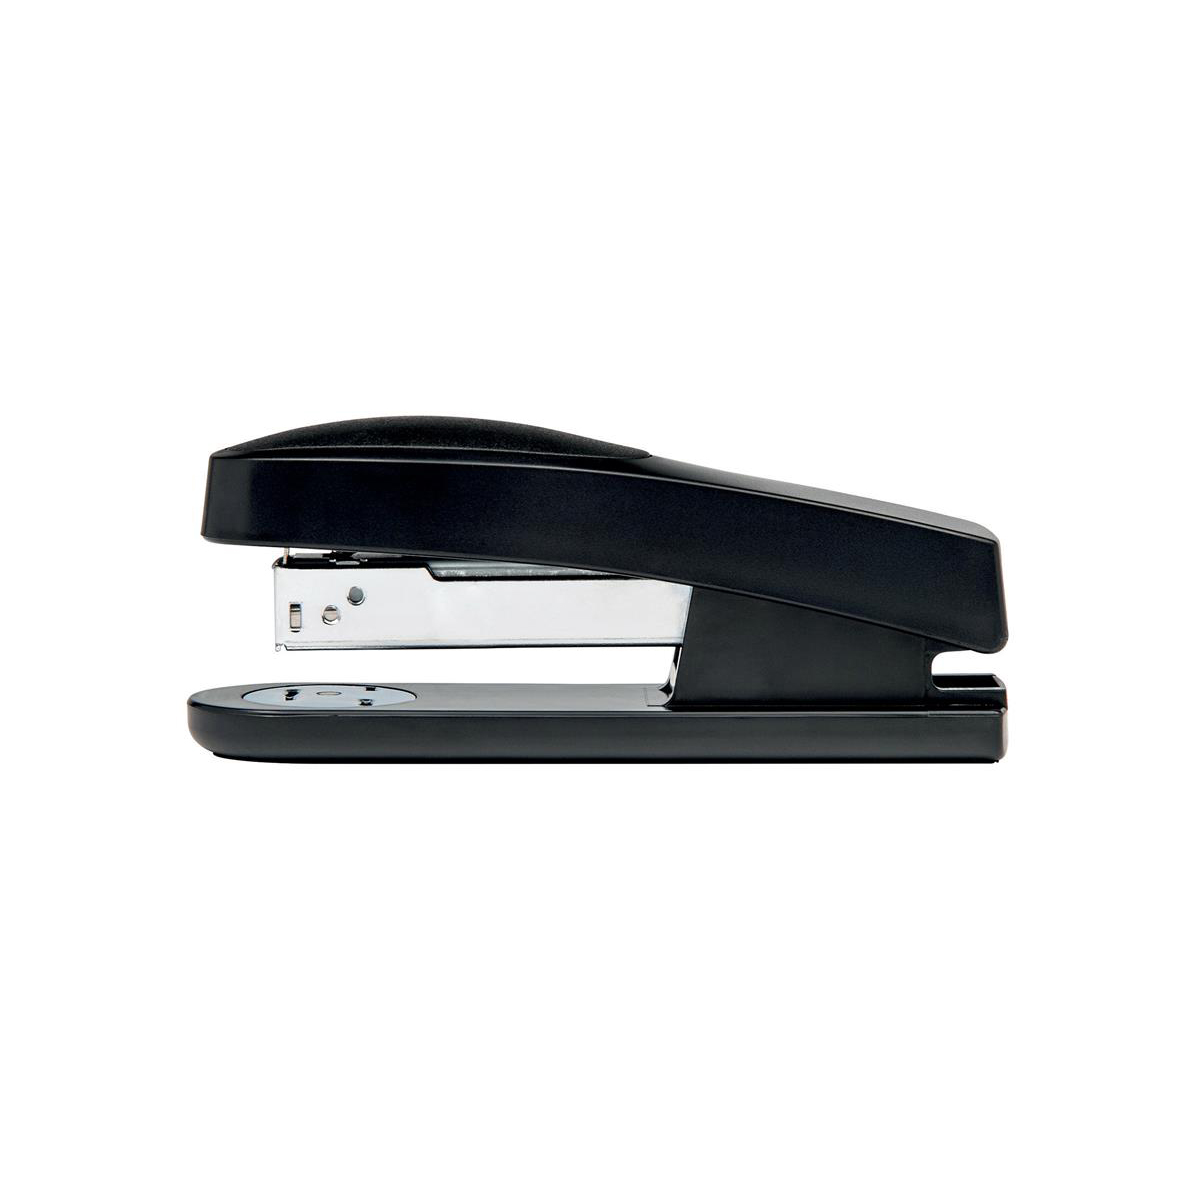 Desktop Staplers 5 Star Office Half Strip Stapler Top Loading Rubber Base 25 Sheet Capacity Takes 26/6 Staples Black